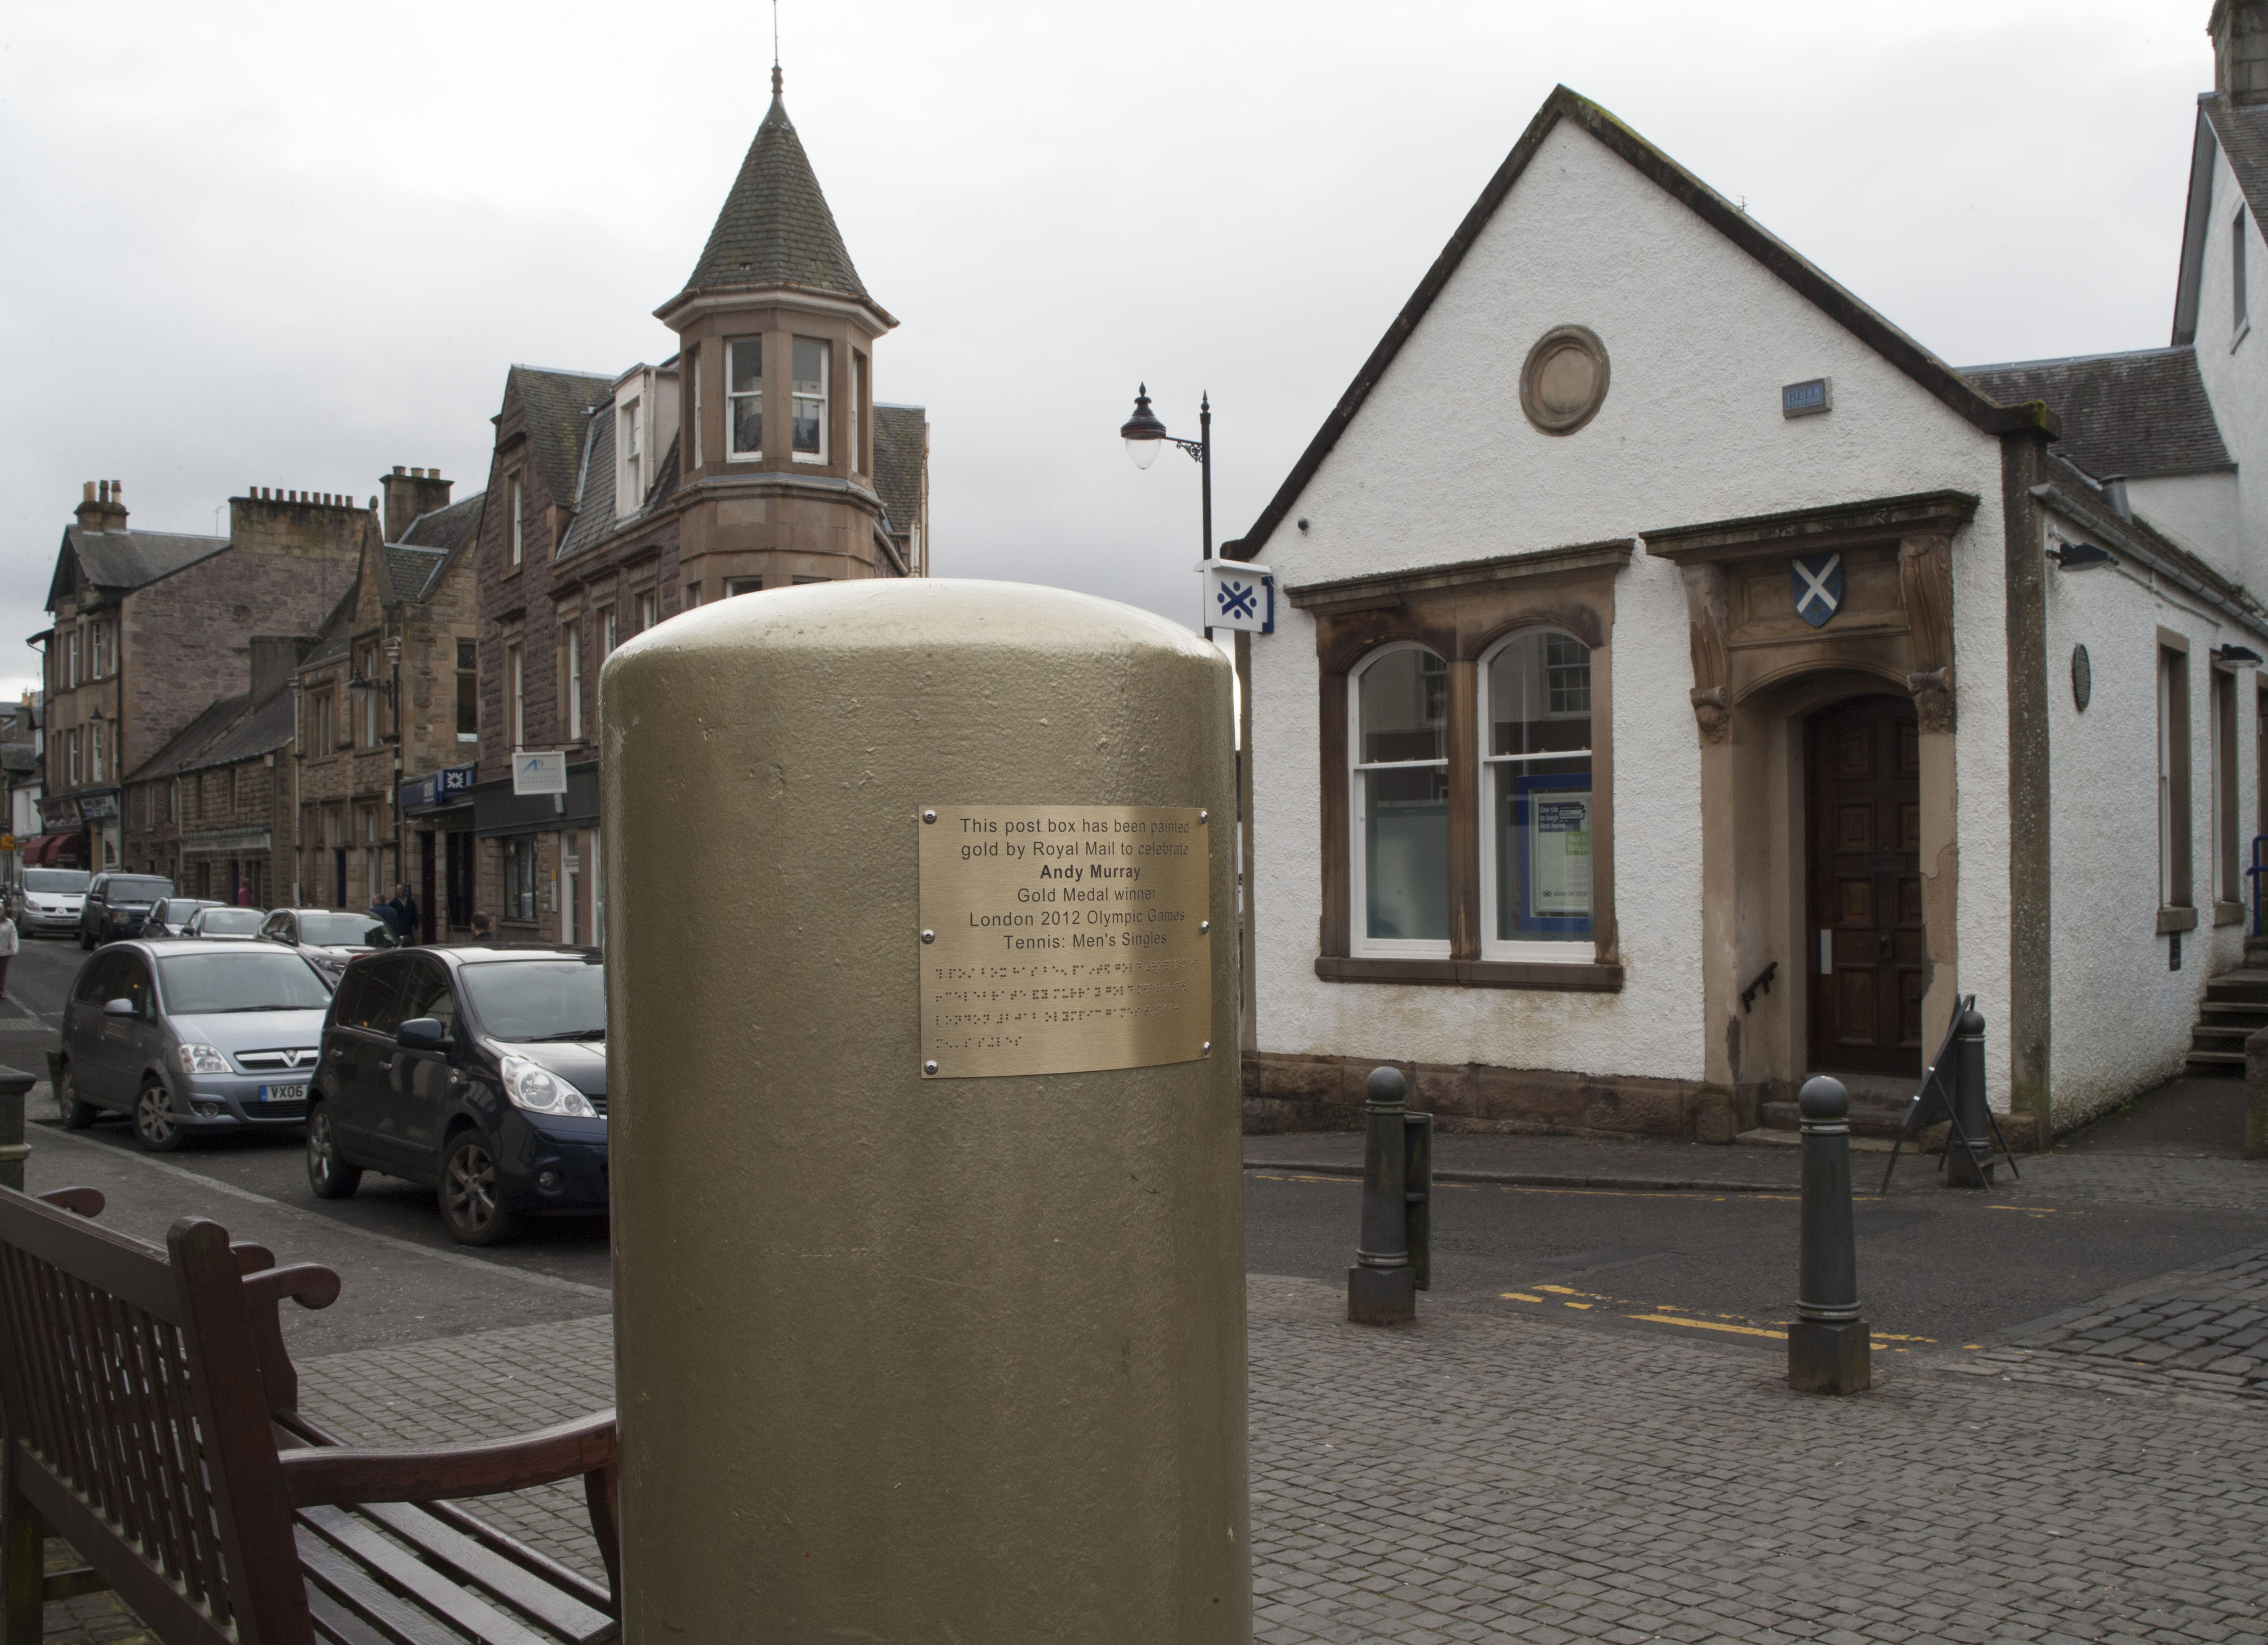 Royal Mail post box painted gold to commemorate Andy Murray's Gold Olympic Medal in 2012